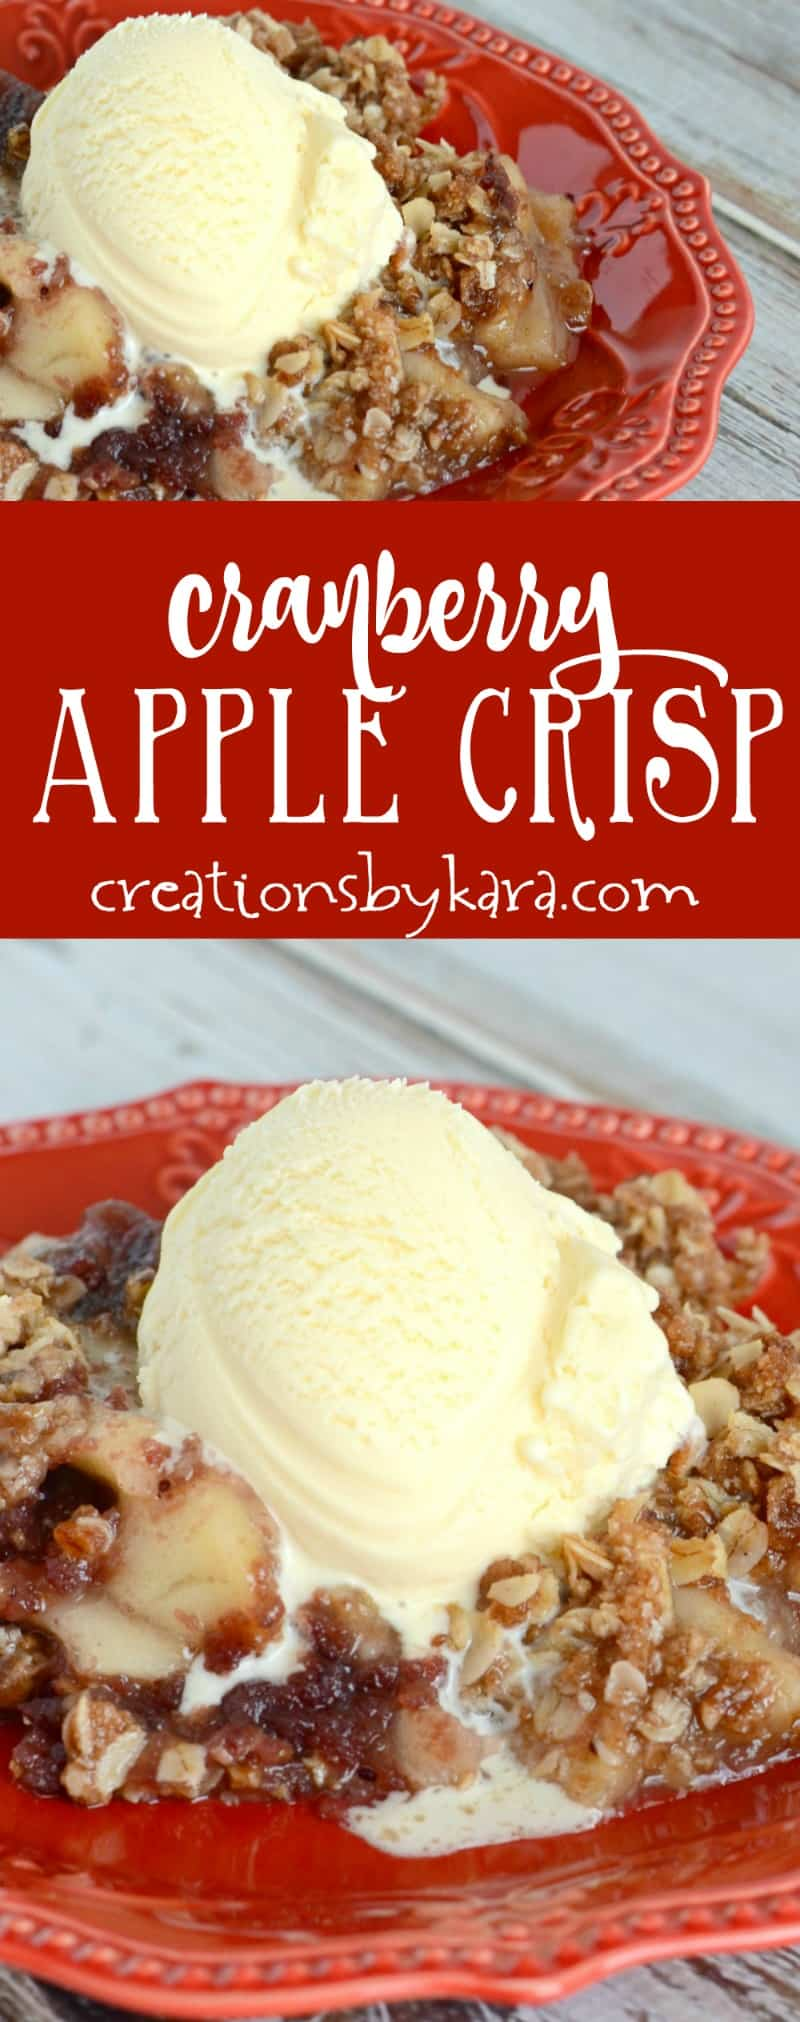 Even non cranberry fans love this Cranberry Apple Crisp. It is absolutely out of this world! A must try apple crisp recipe.